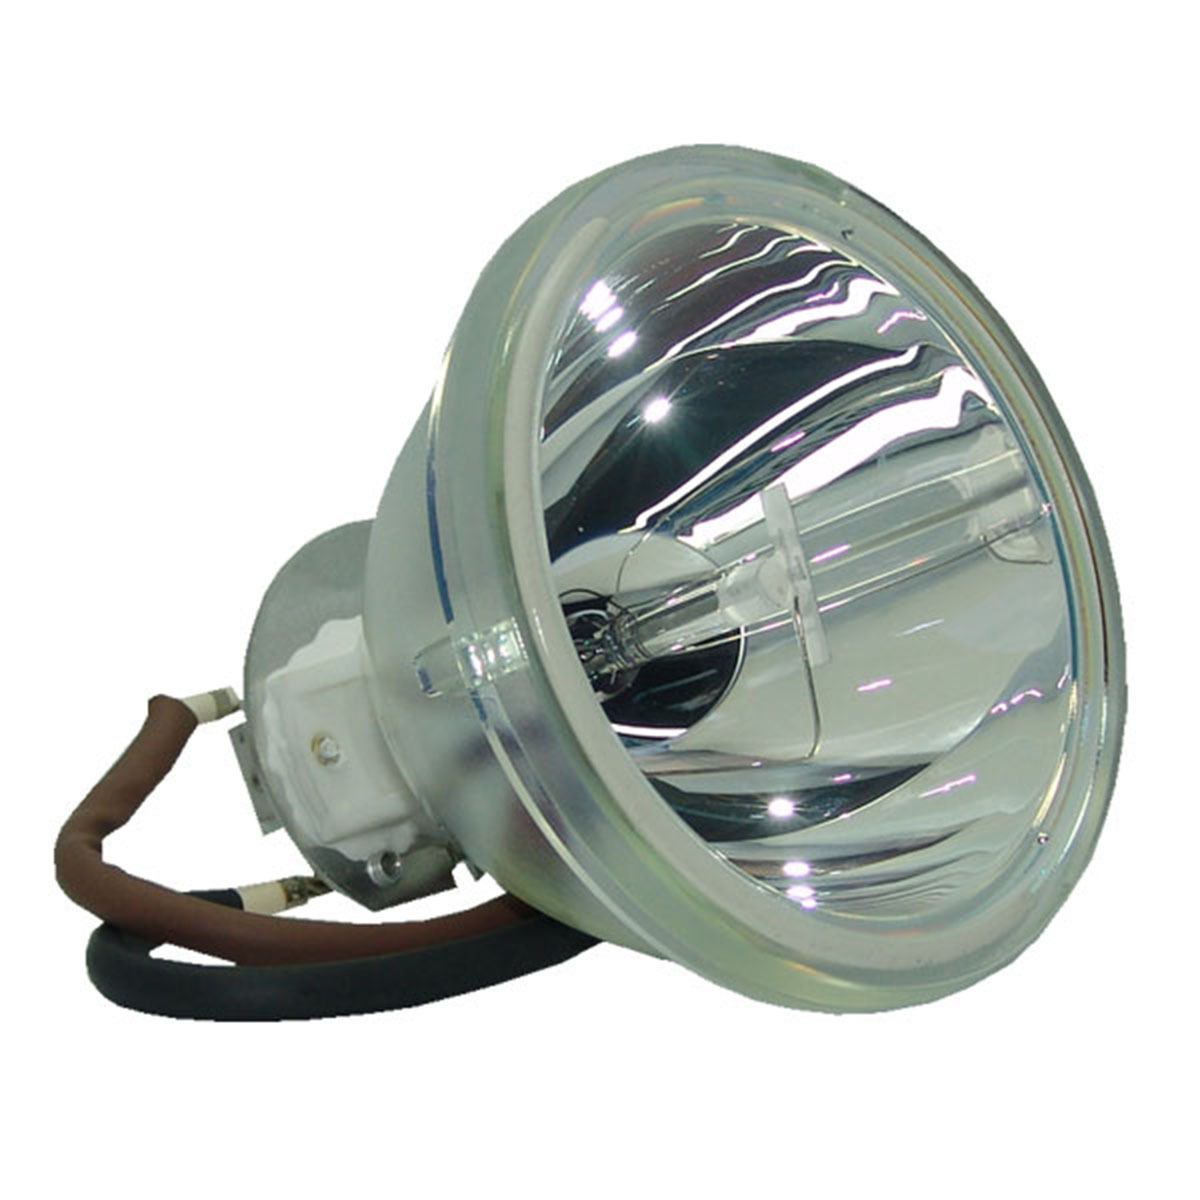 Compatible Bare Bulb Y67-LMP/72514011/75008204 for TOSHIBA 50HM67/57HM117/57HM167 Projector Lamp Bulbs without housing tv projector housing lamp bulb y67 lmp for 50hm67 57hm117 projector